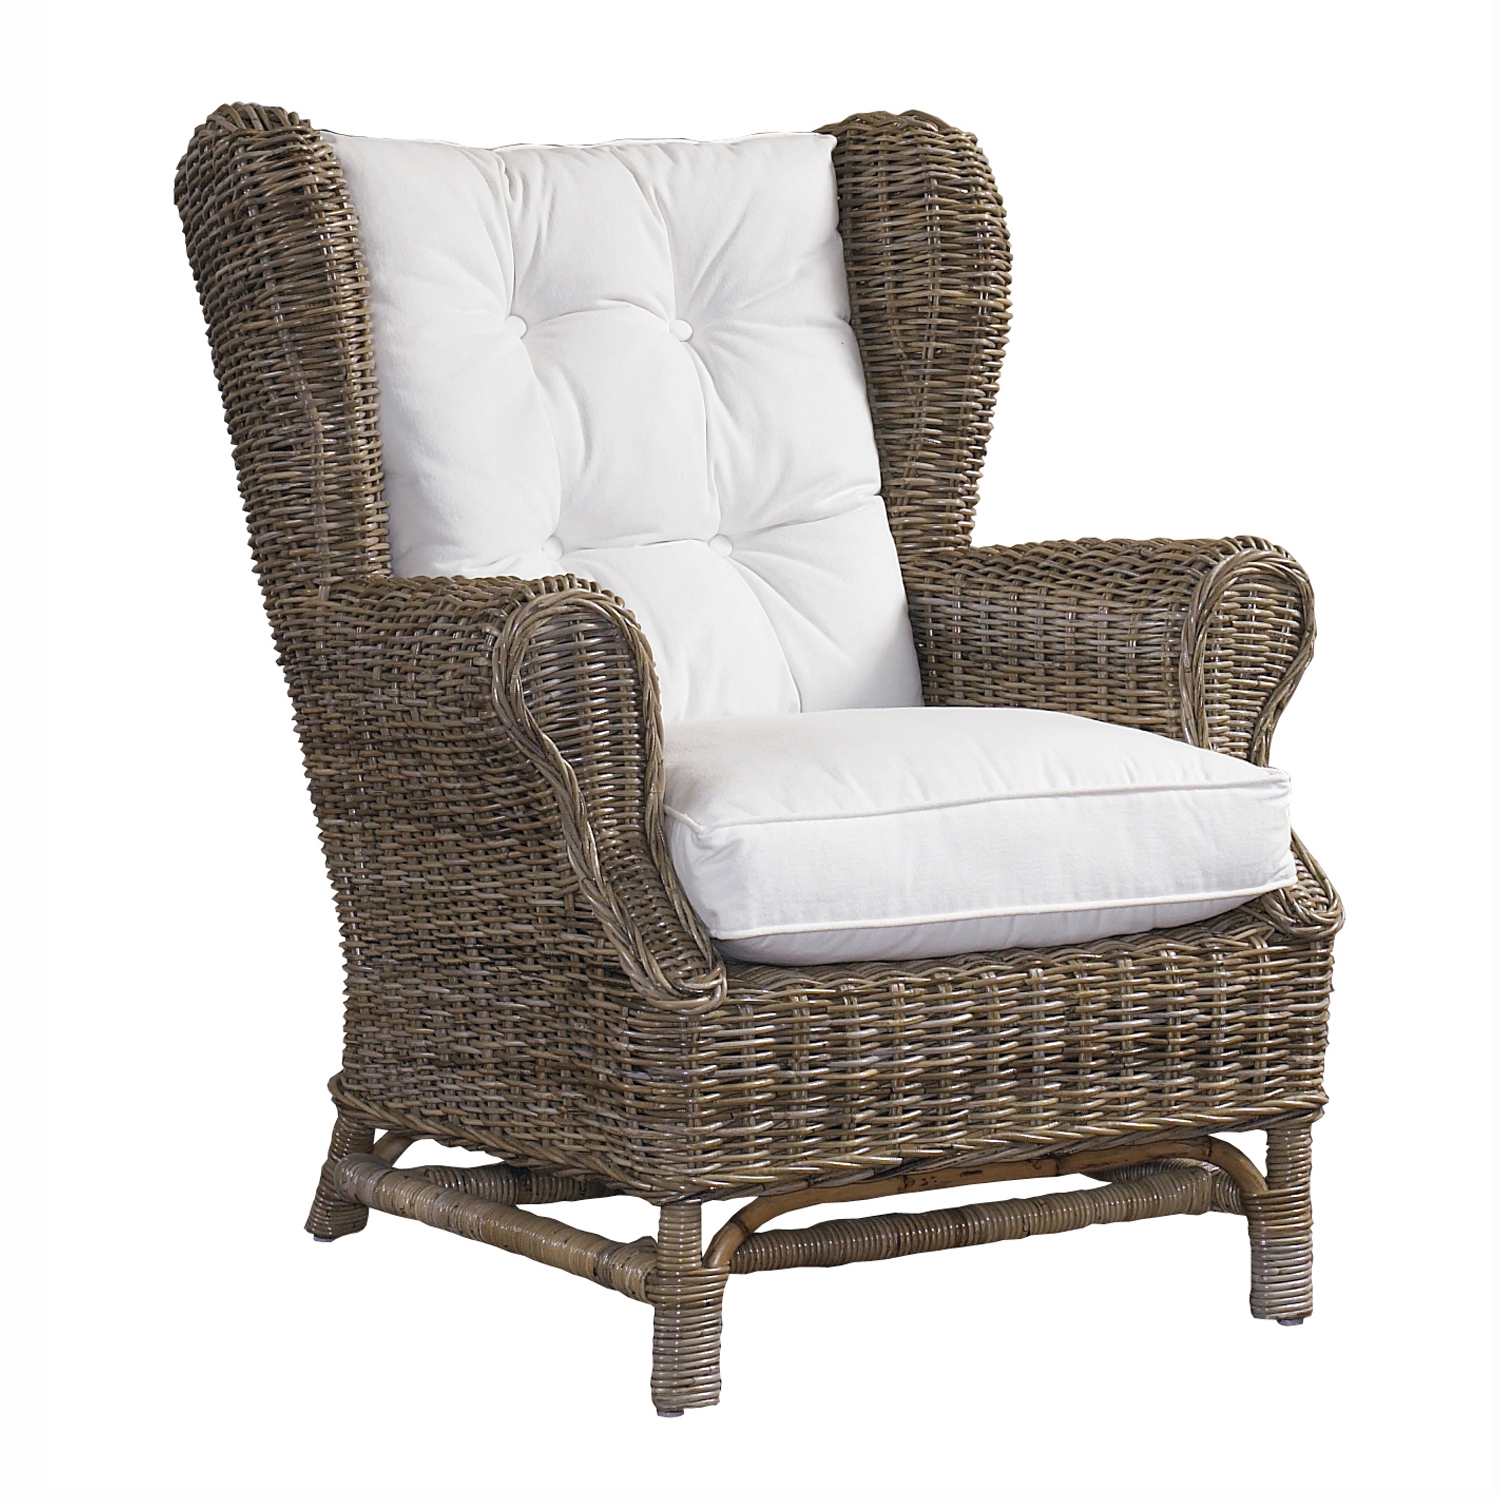 Kubu Wing Chair-$975.00